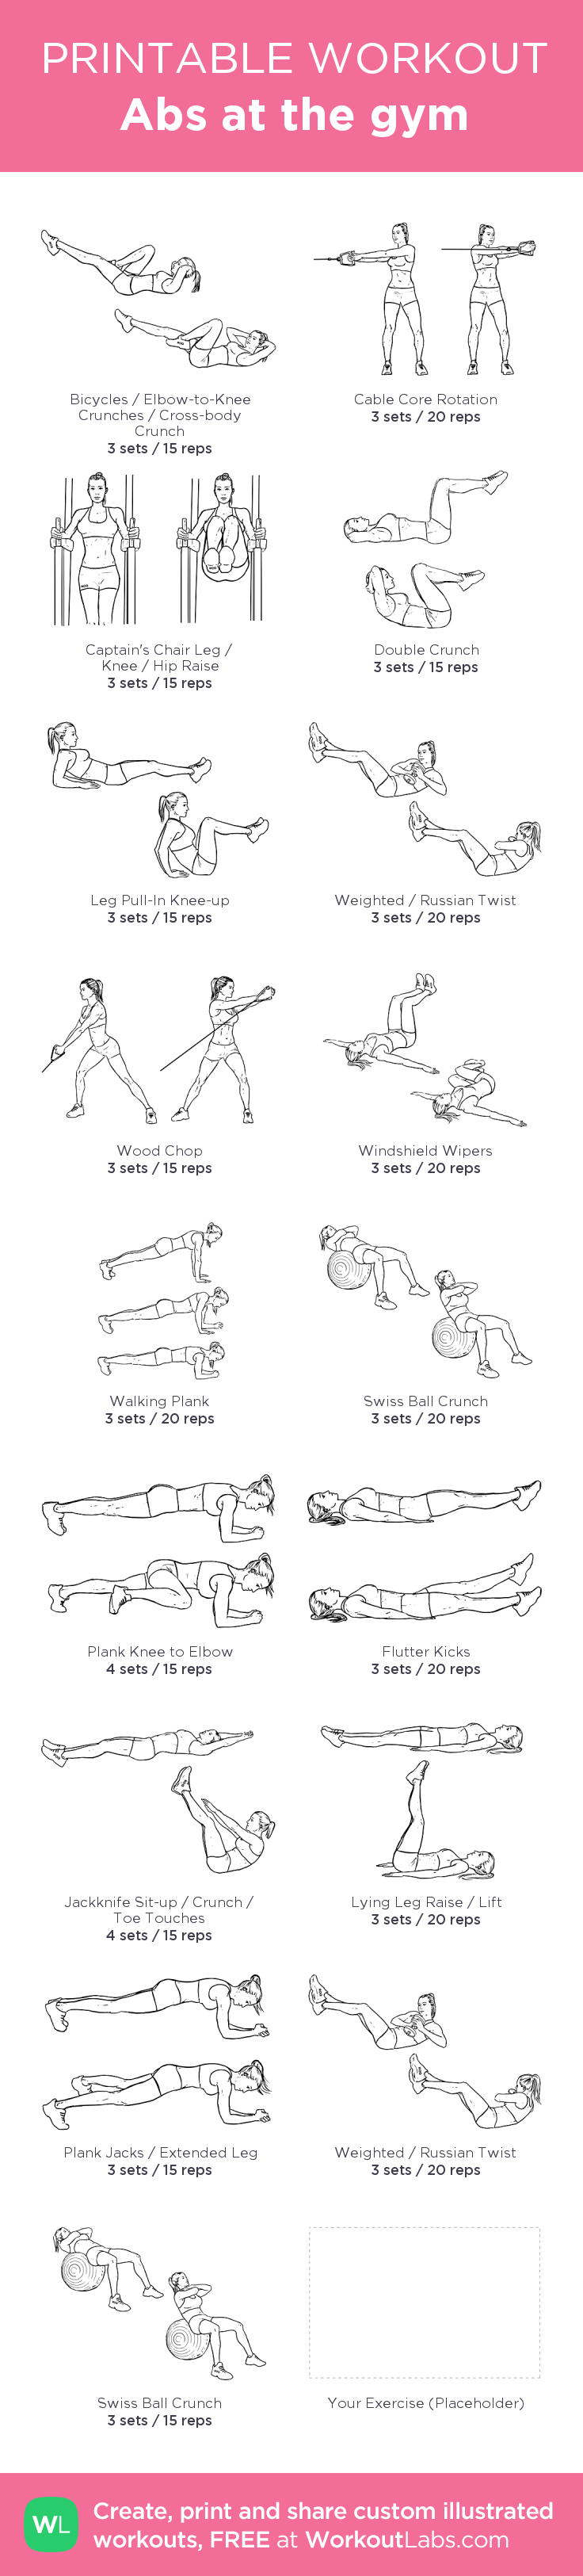 Abs at the gym my visual workout created at WorkoutLabs